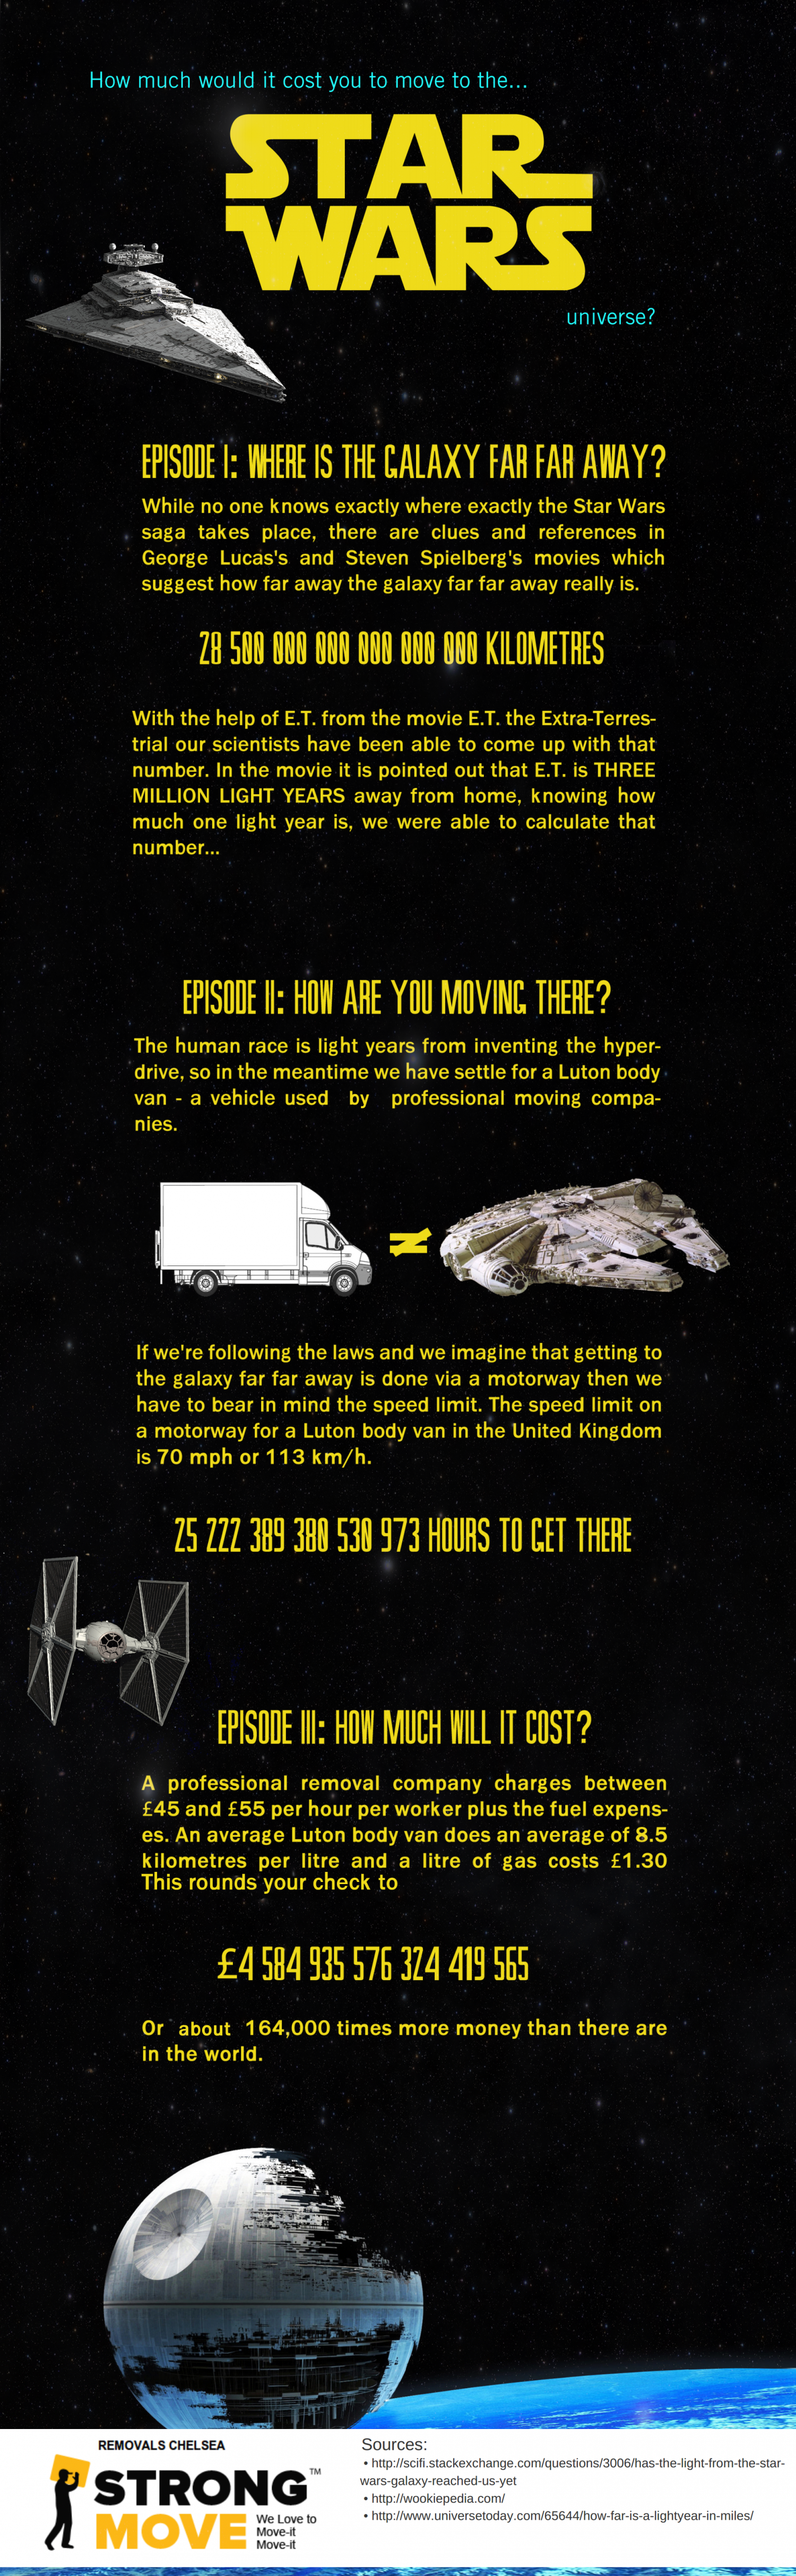 How Much Would It Cost Move to the Star Wars Universe? Infographic